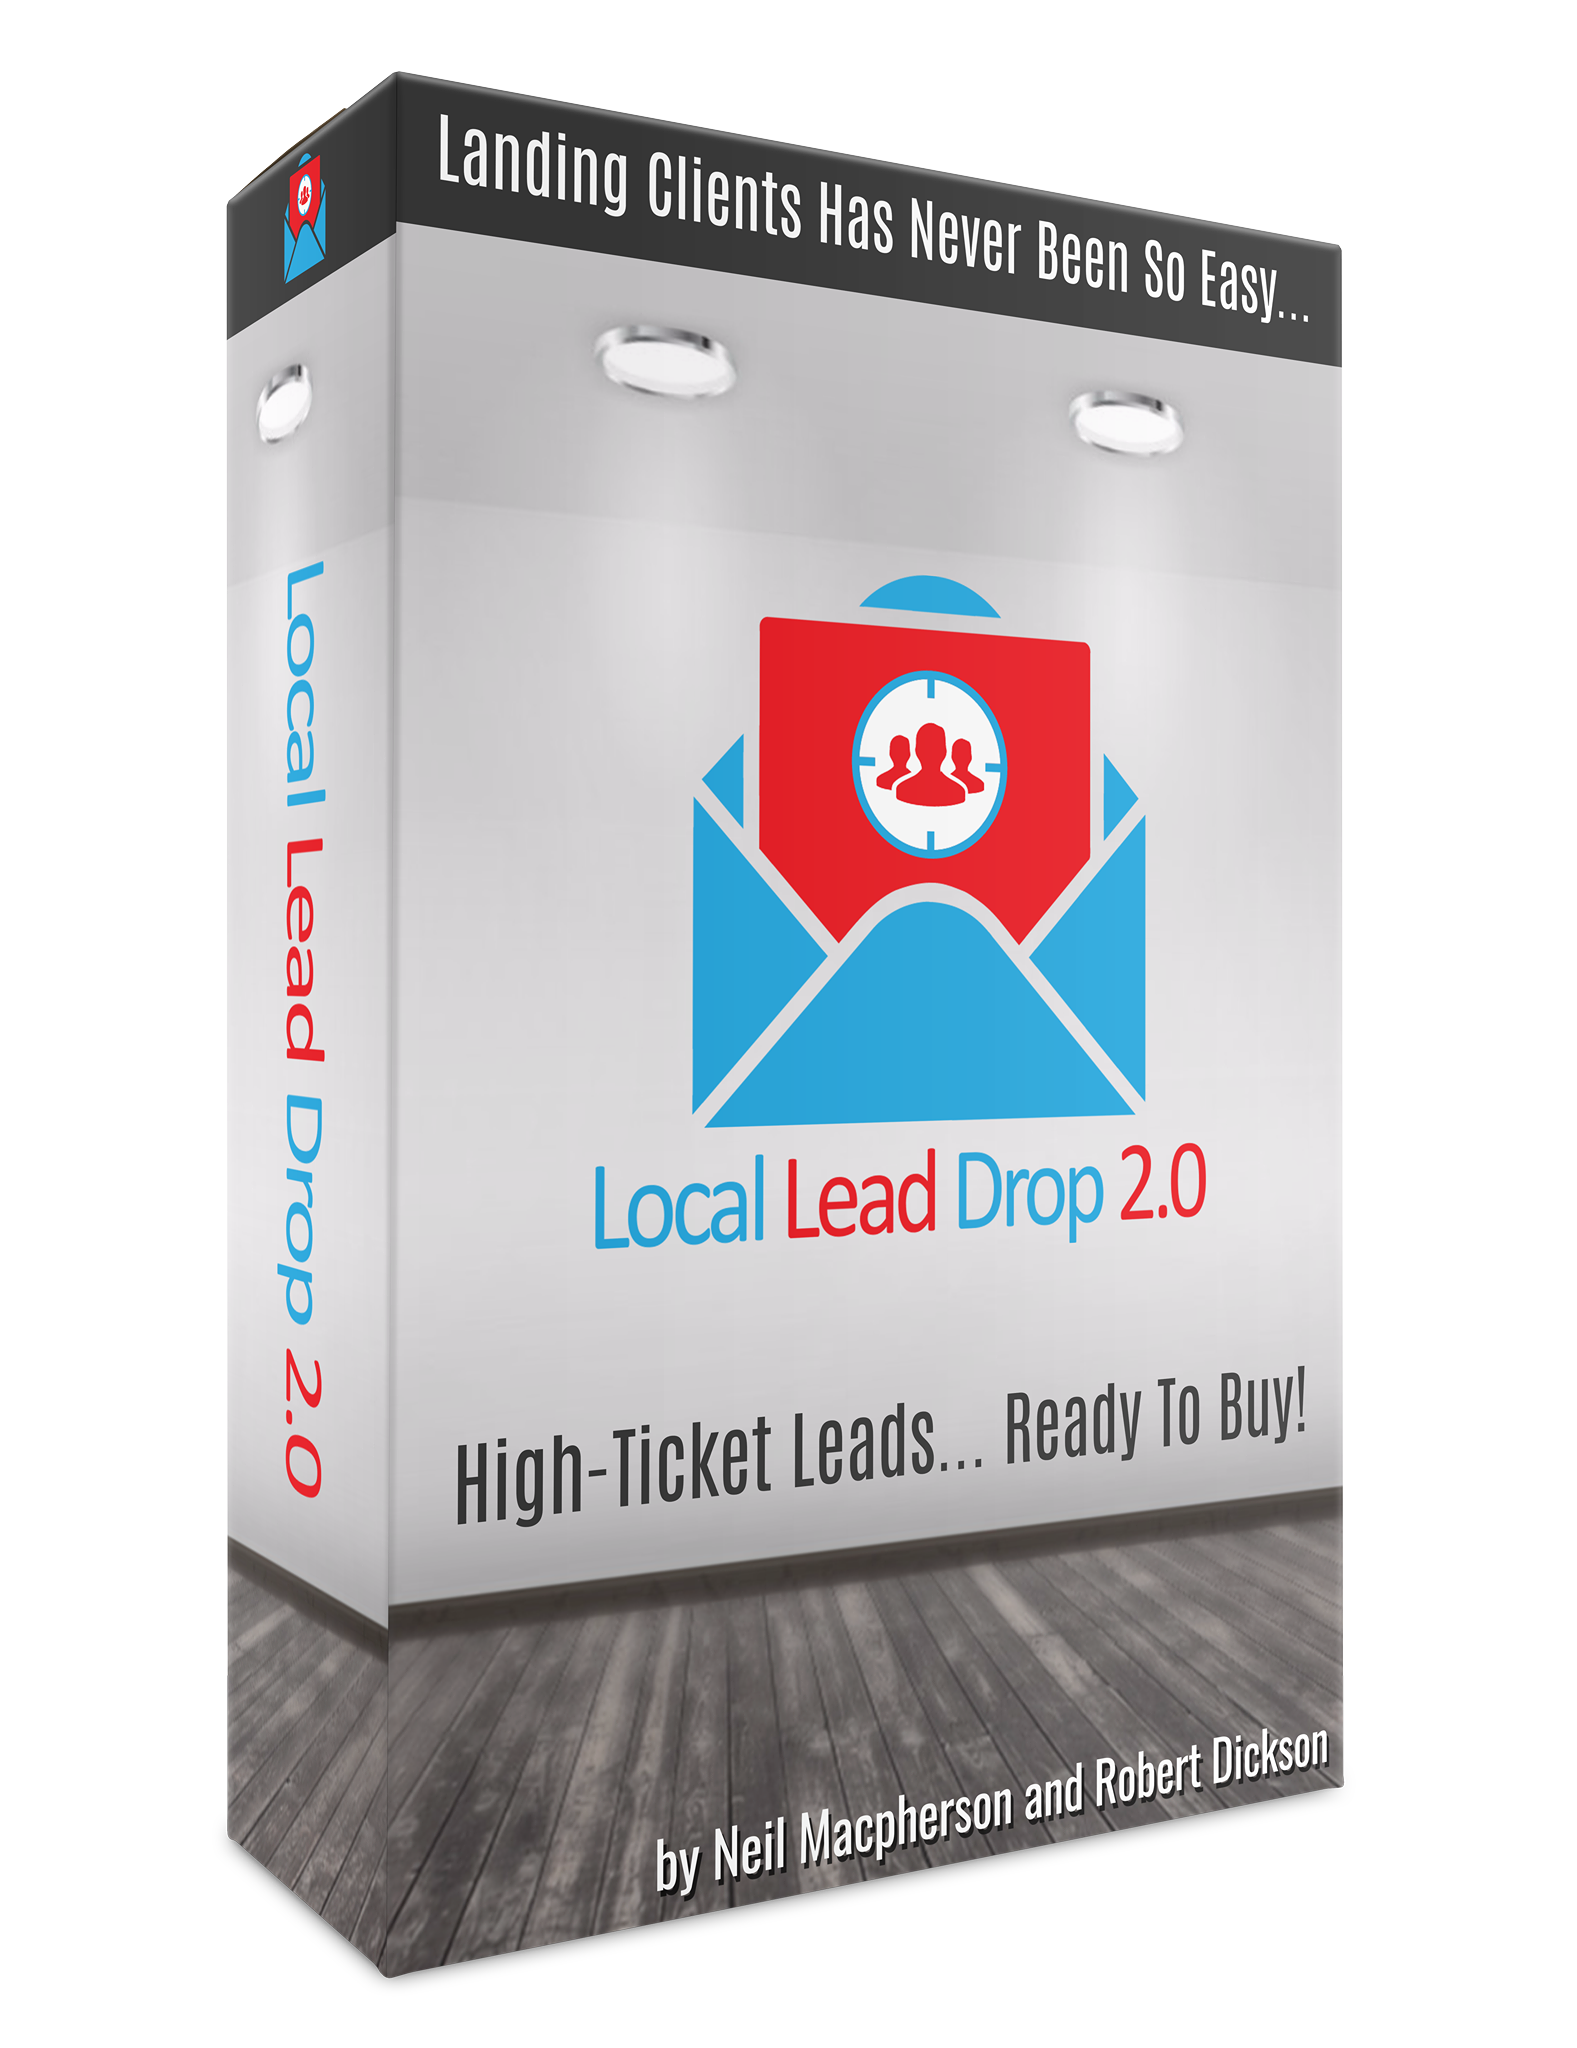 Local Lead Drop 2.0 By Neil Macpherson and Robert Dickson Review – SHOULD YOU TRY IT? : Best Training Course Of Getting Ready To Buy High Ticket Leads Literally Dropping Into Your Inbox Within Hours Of Getting Started In Daily Almost Anywhere In The World